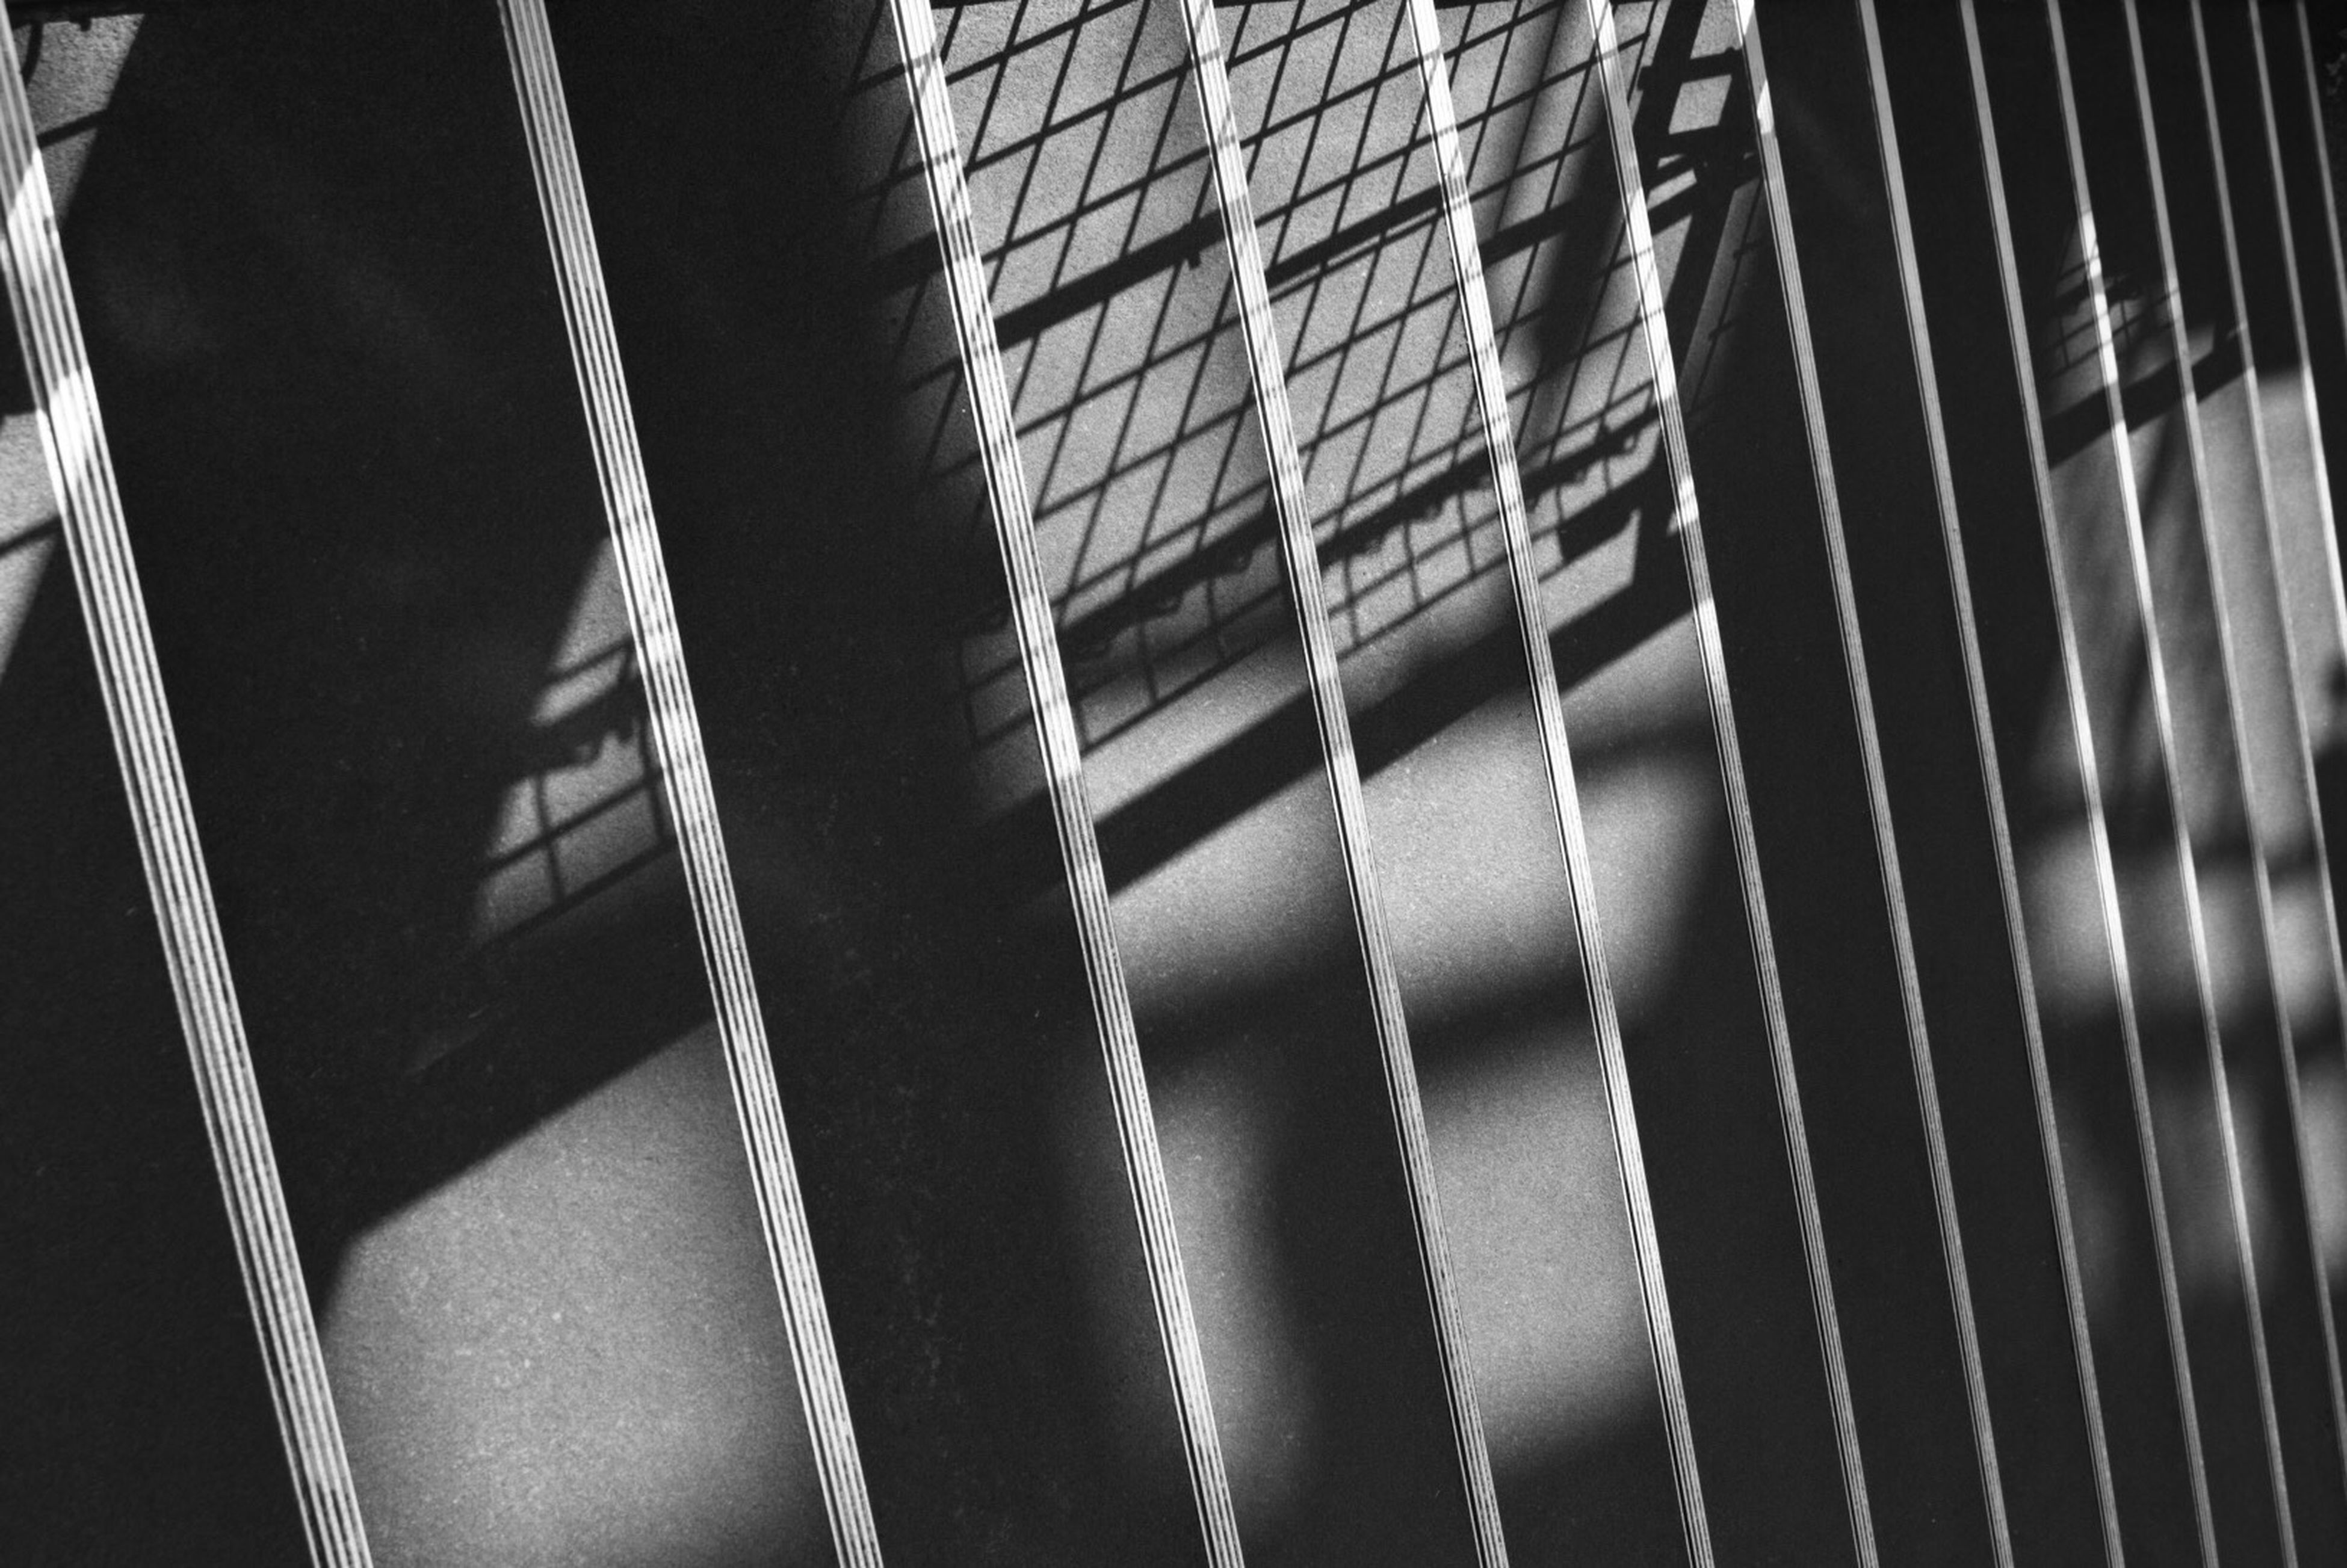 pattern, full frame, backgrounds, close-up, indoors, repetition, design, textured, built structure, abstract, architecture, metal, no people, striped, window, shadow, detail, day, in a row, shape